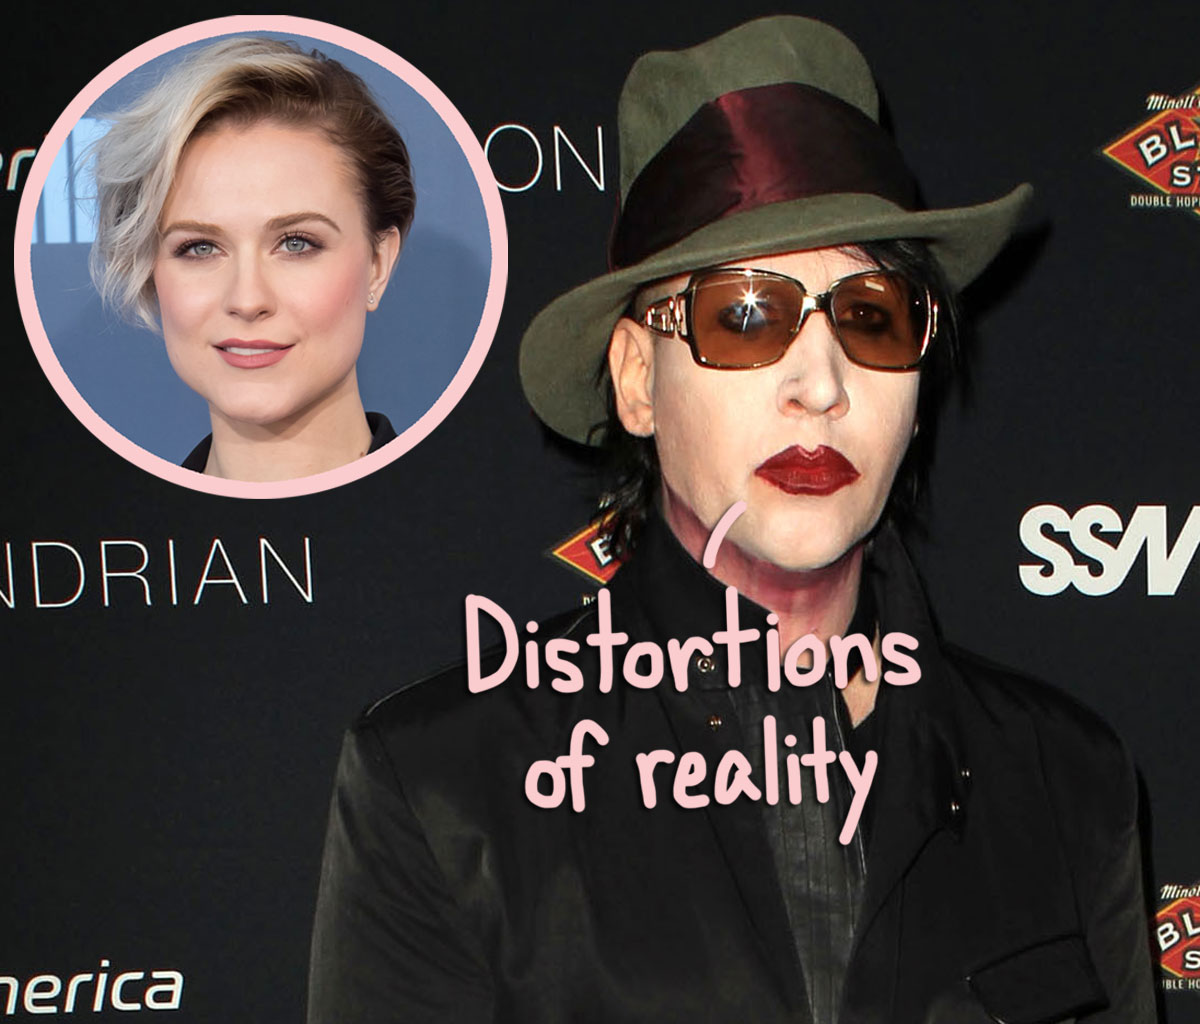 Marilyn Manson Denies Abuse Allegations, Calls Them 'Horrible Distortions Of Reality'